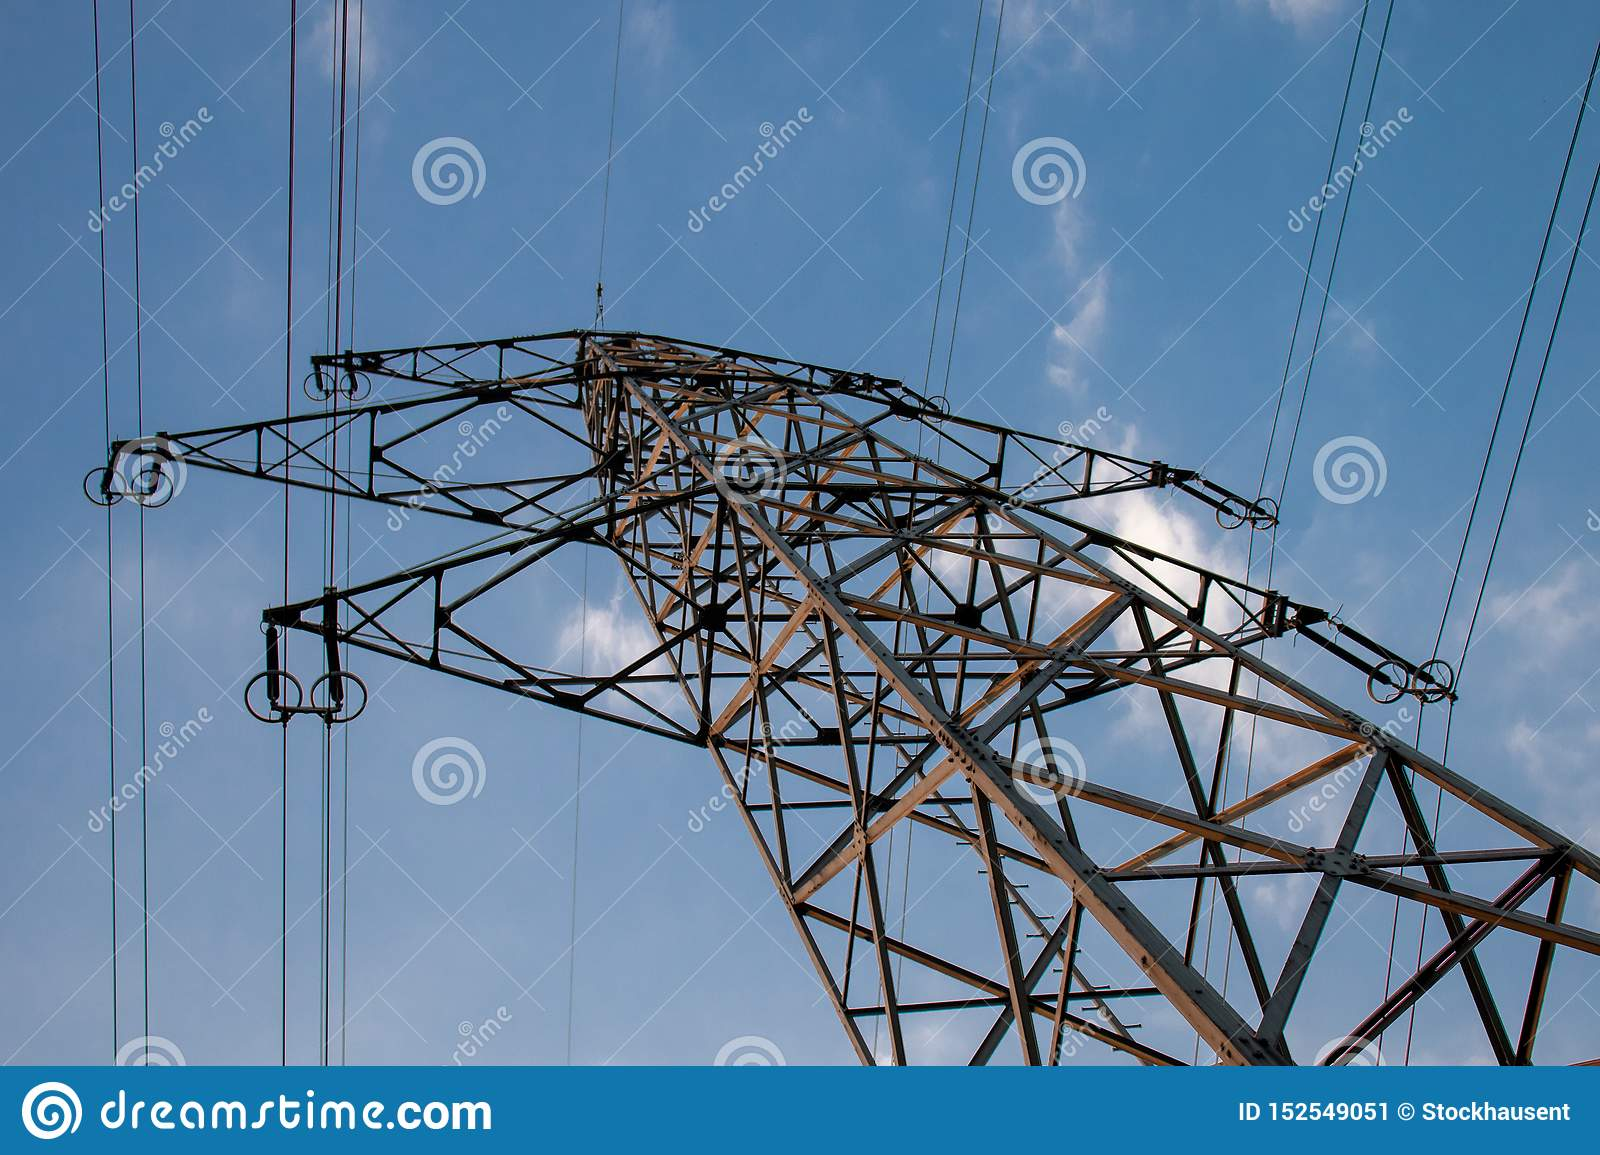 High voltage line, enery for people